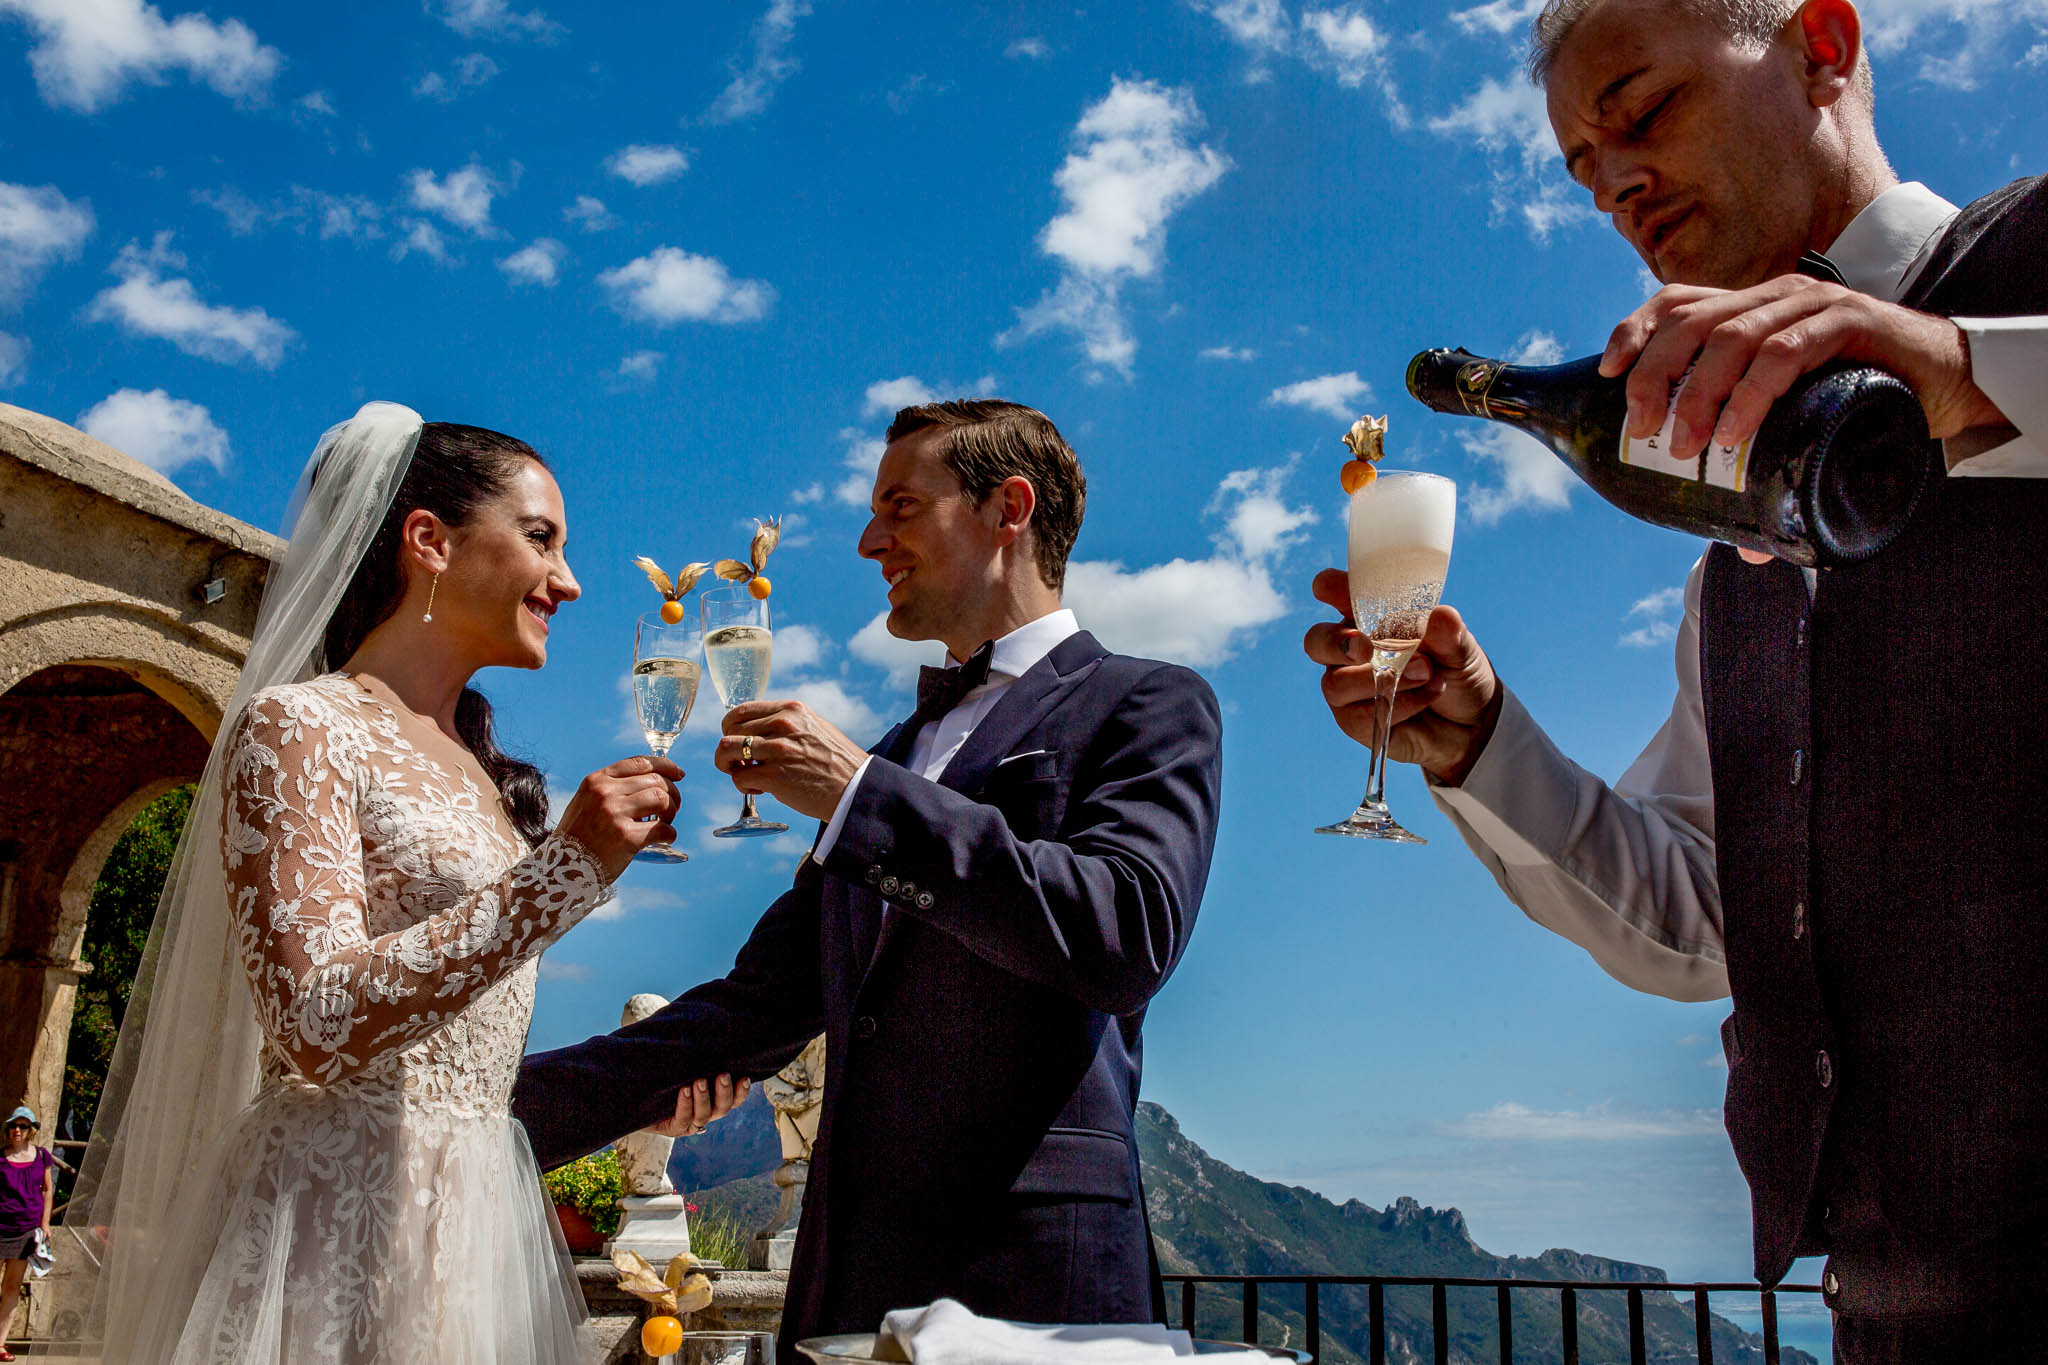 Bride and Groom enjoying champagne on Villa Cimbrone terrace overlooking Amalfi Coast in Ravello Italy